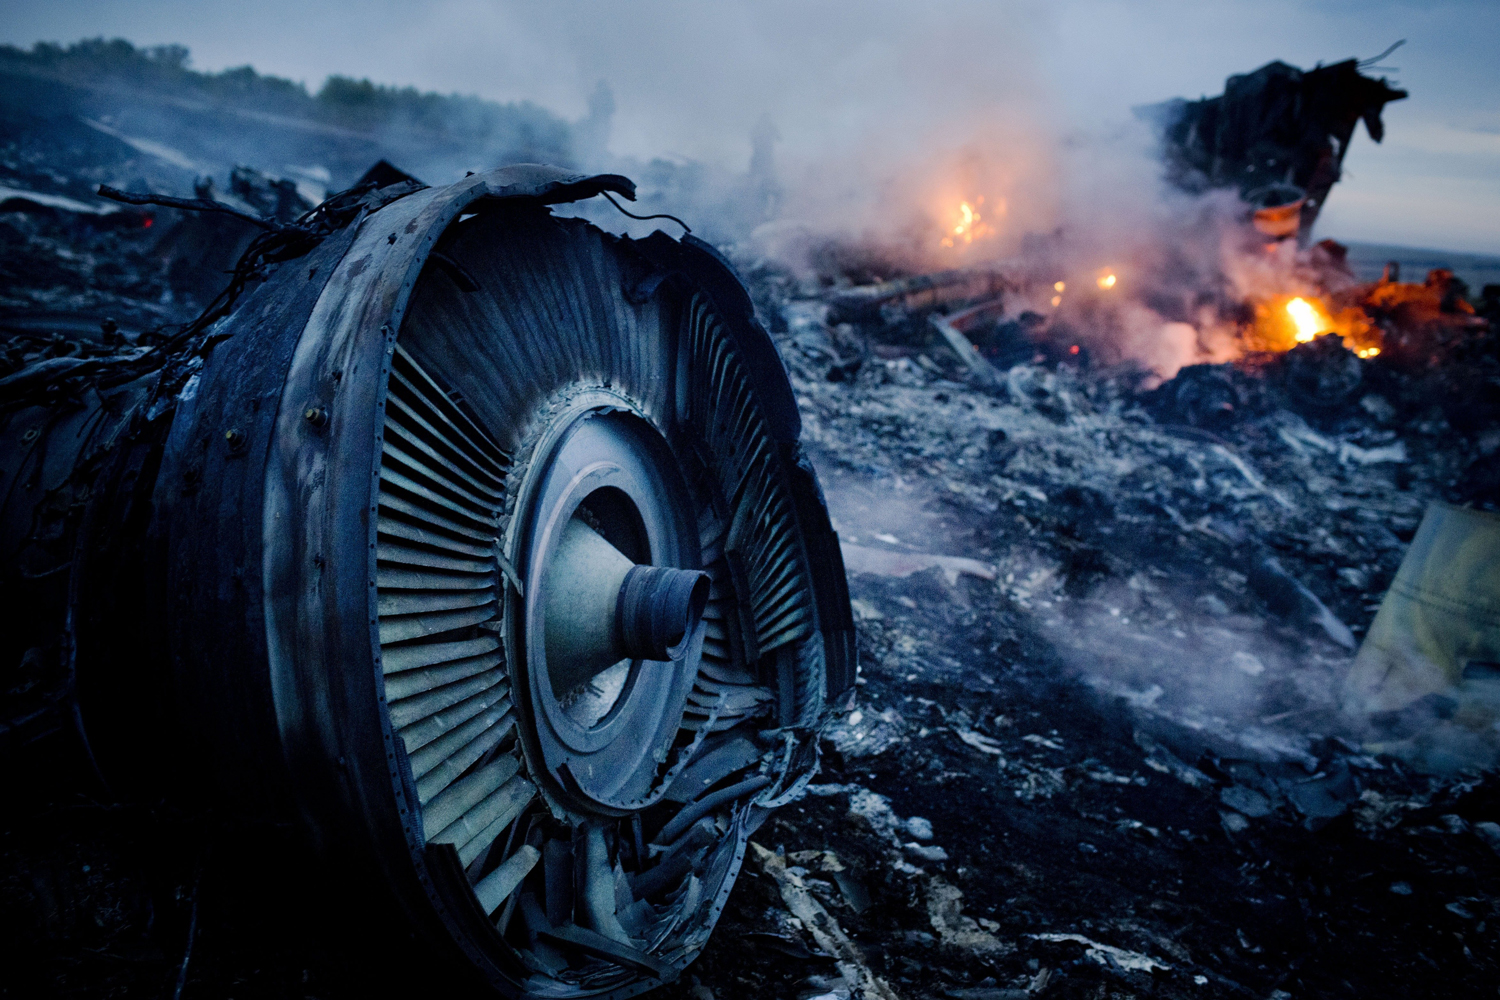 Debris from Malaysia Airlines Flight 17 is shown smouldering in a field  July 17, 2014 in Grabovo, Ukraine.